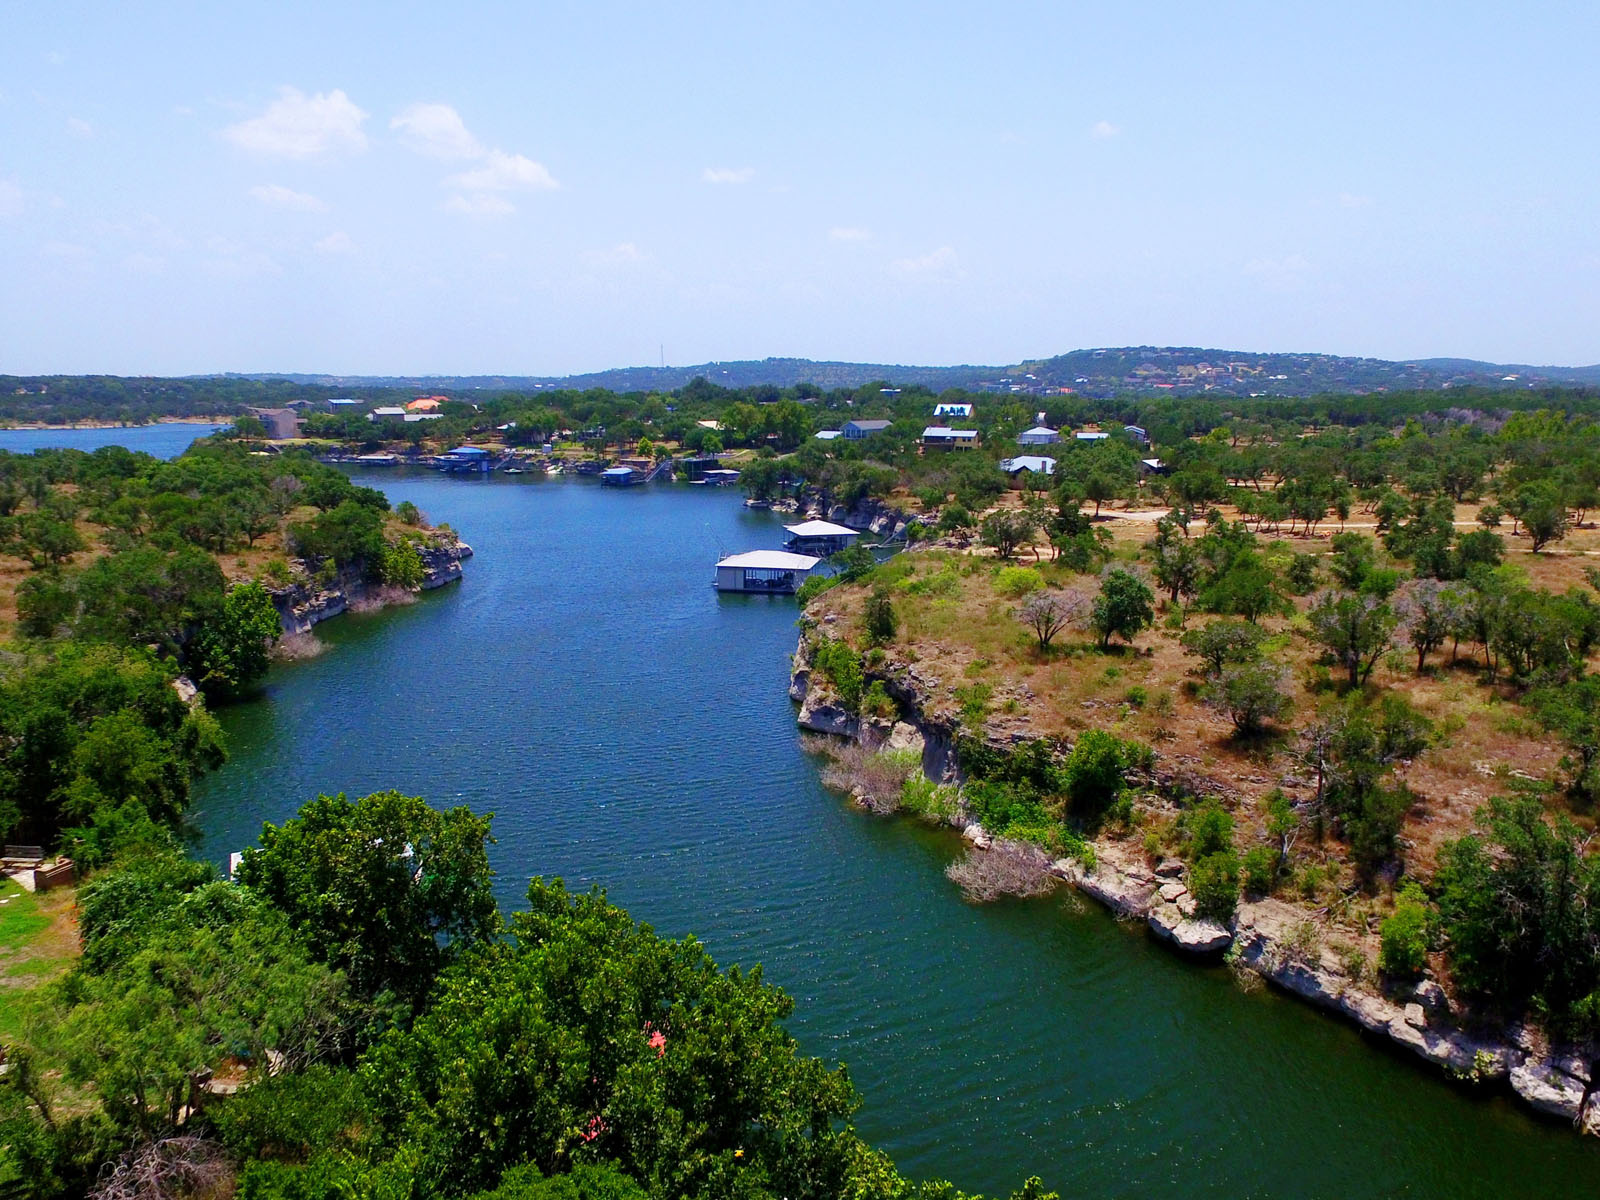 Terreno por un Venta en Backs to Pace Bend Park 1907 N Pace Bend Rd Austin, Texas 78669 Estados Unidos